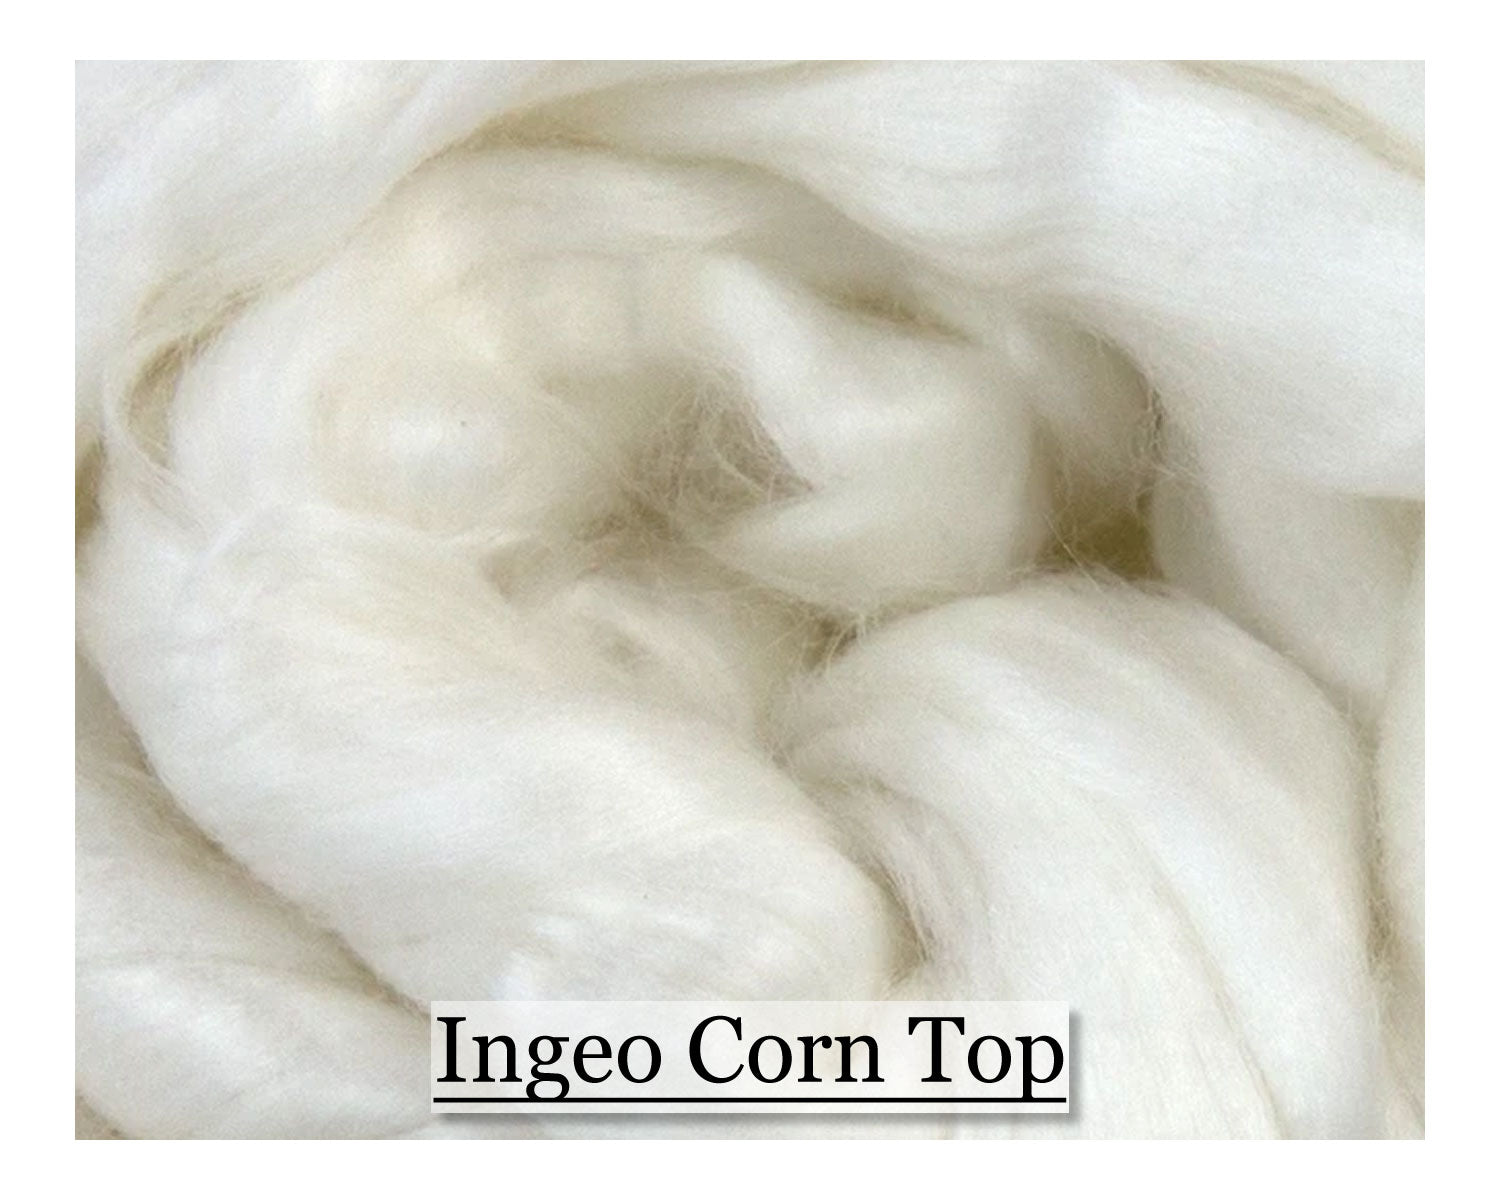 Ingeo Corn Top - 16oz